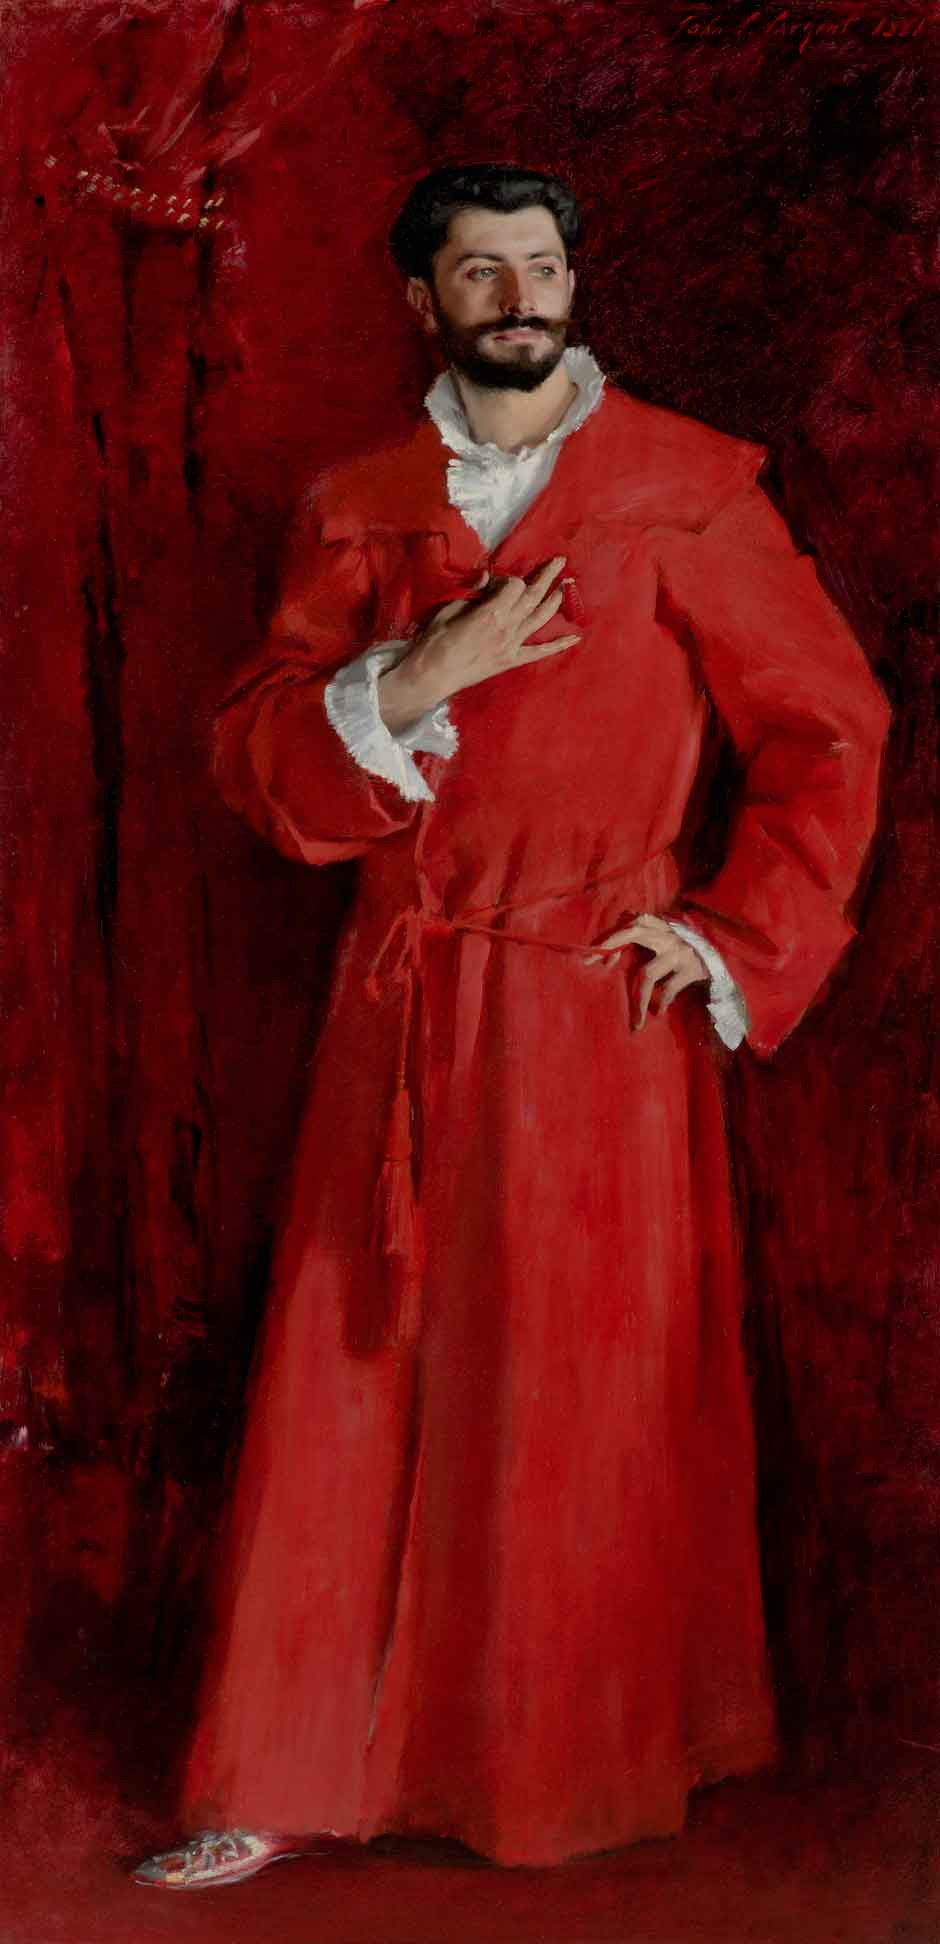 John Singer Sargent, Dr Pozzi at home, 1881. The Armand Hammer Collection, Gift of the Armand Hammer Foundation. Hammer Museum, Los Angeles